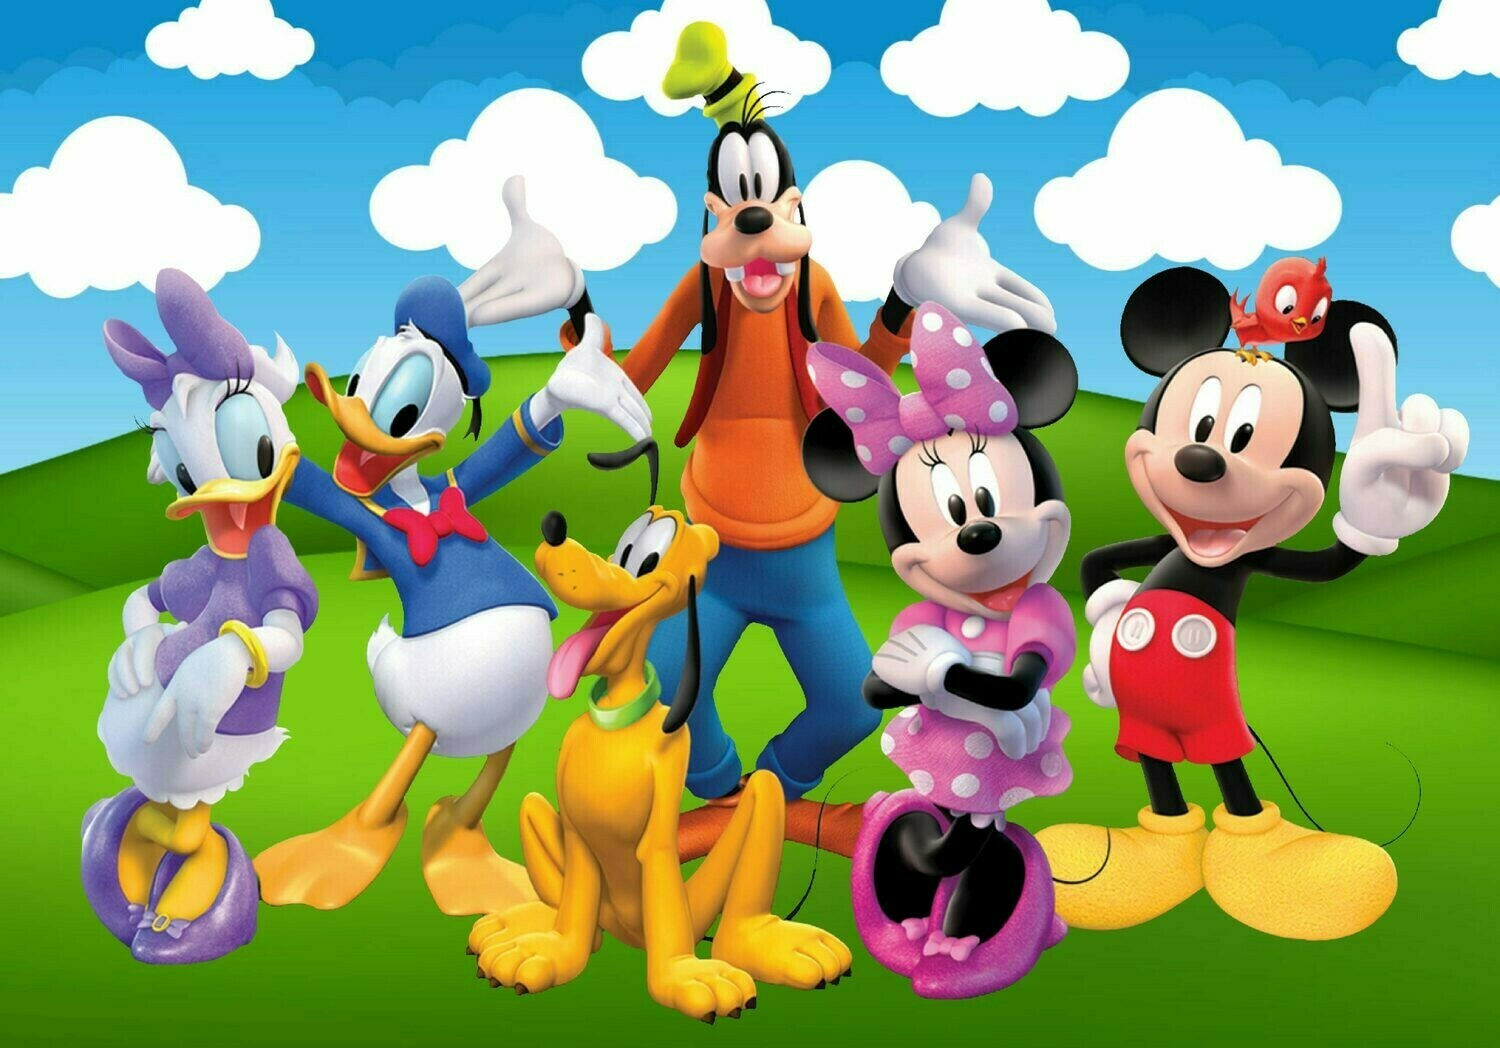 Disney Crew - 50 x 70cm - Full Drill (Square), Diamond Painting Kit - Currently in stock